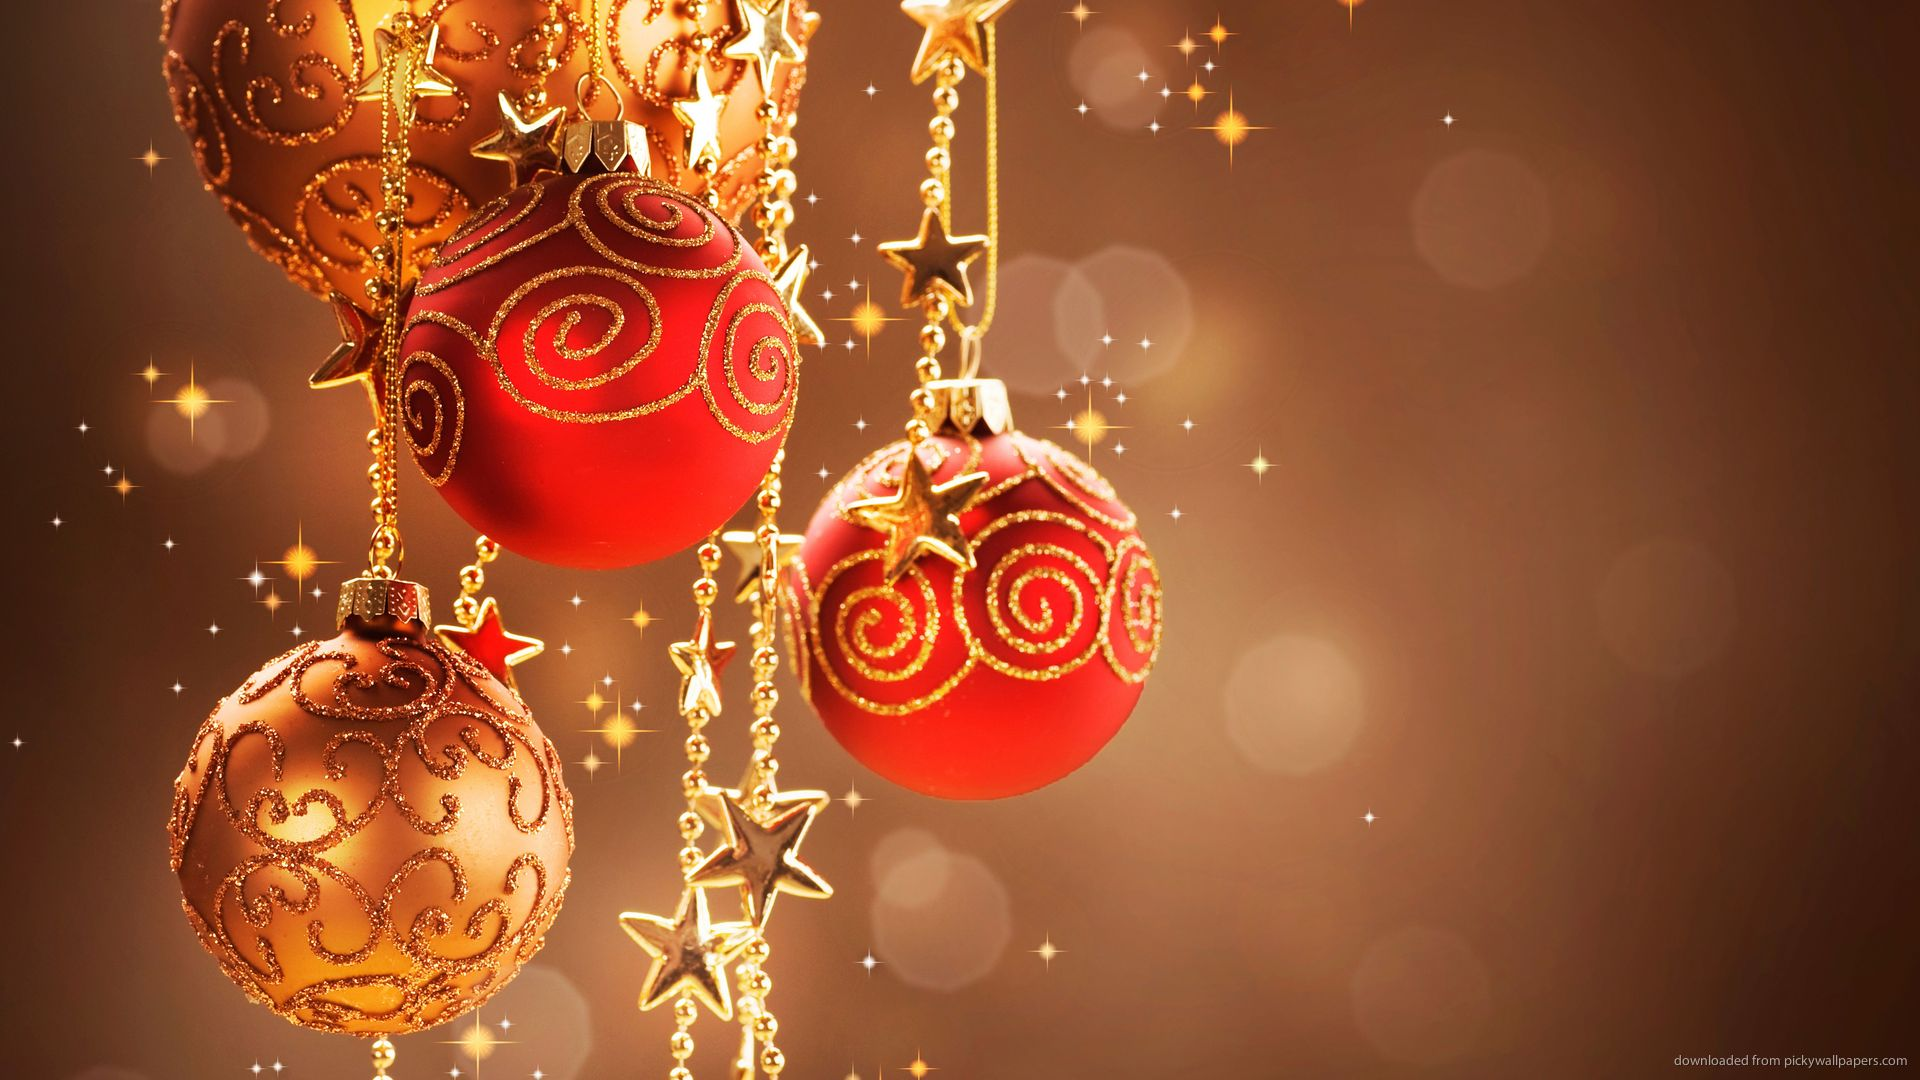 Download 1920x1080 Christmas Decorations Ultra HD Wallpaper 1920x1080